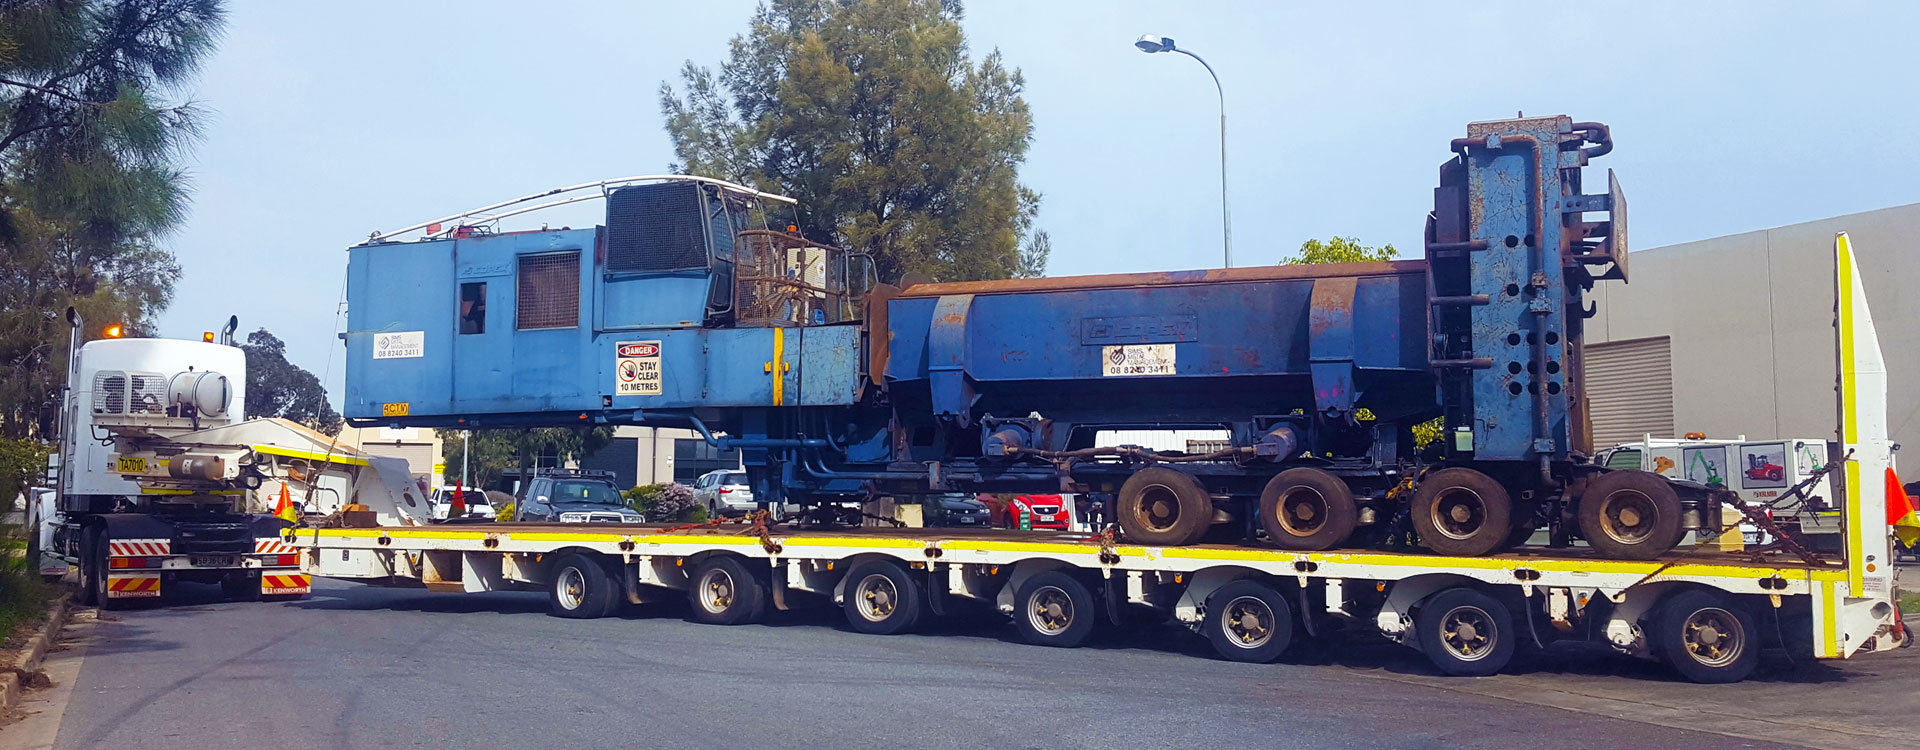 Big Chief Heavy Haulage Transport Truck with Over Mass load